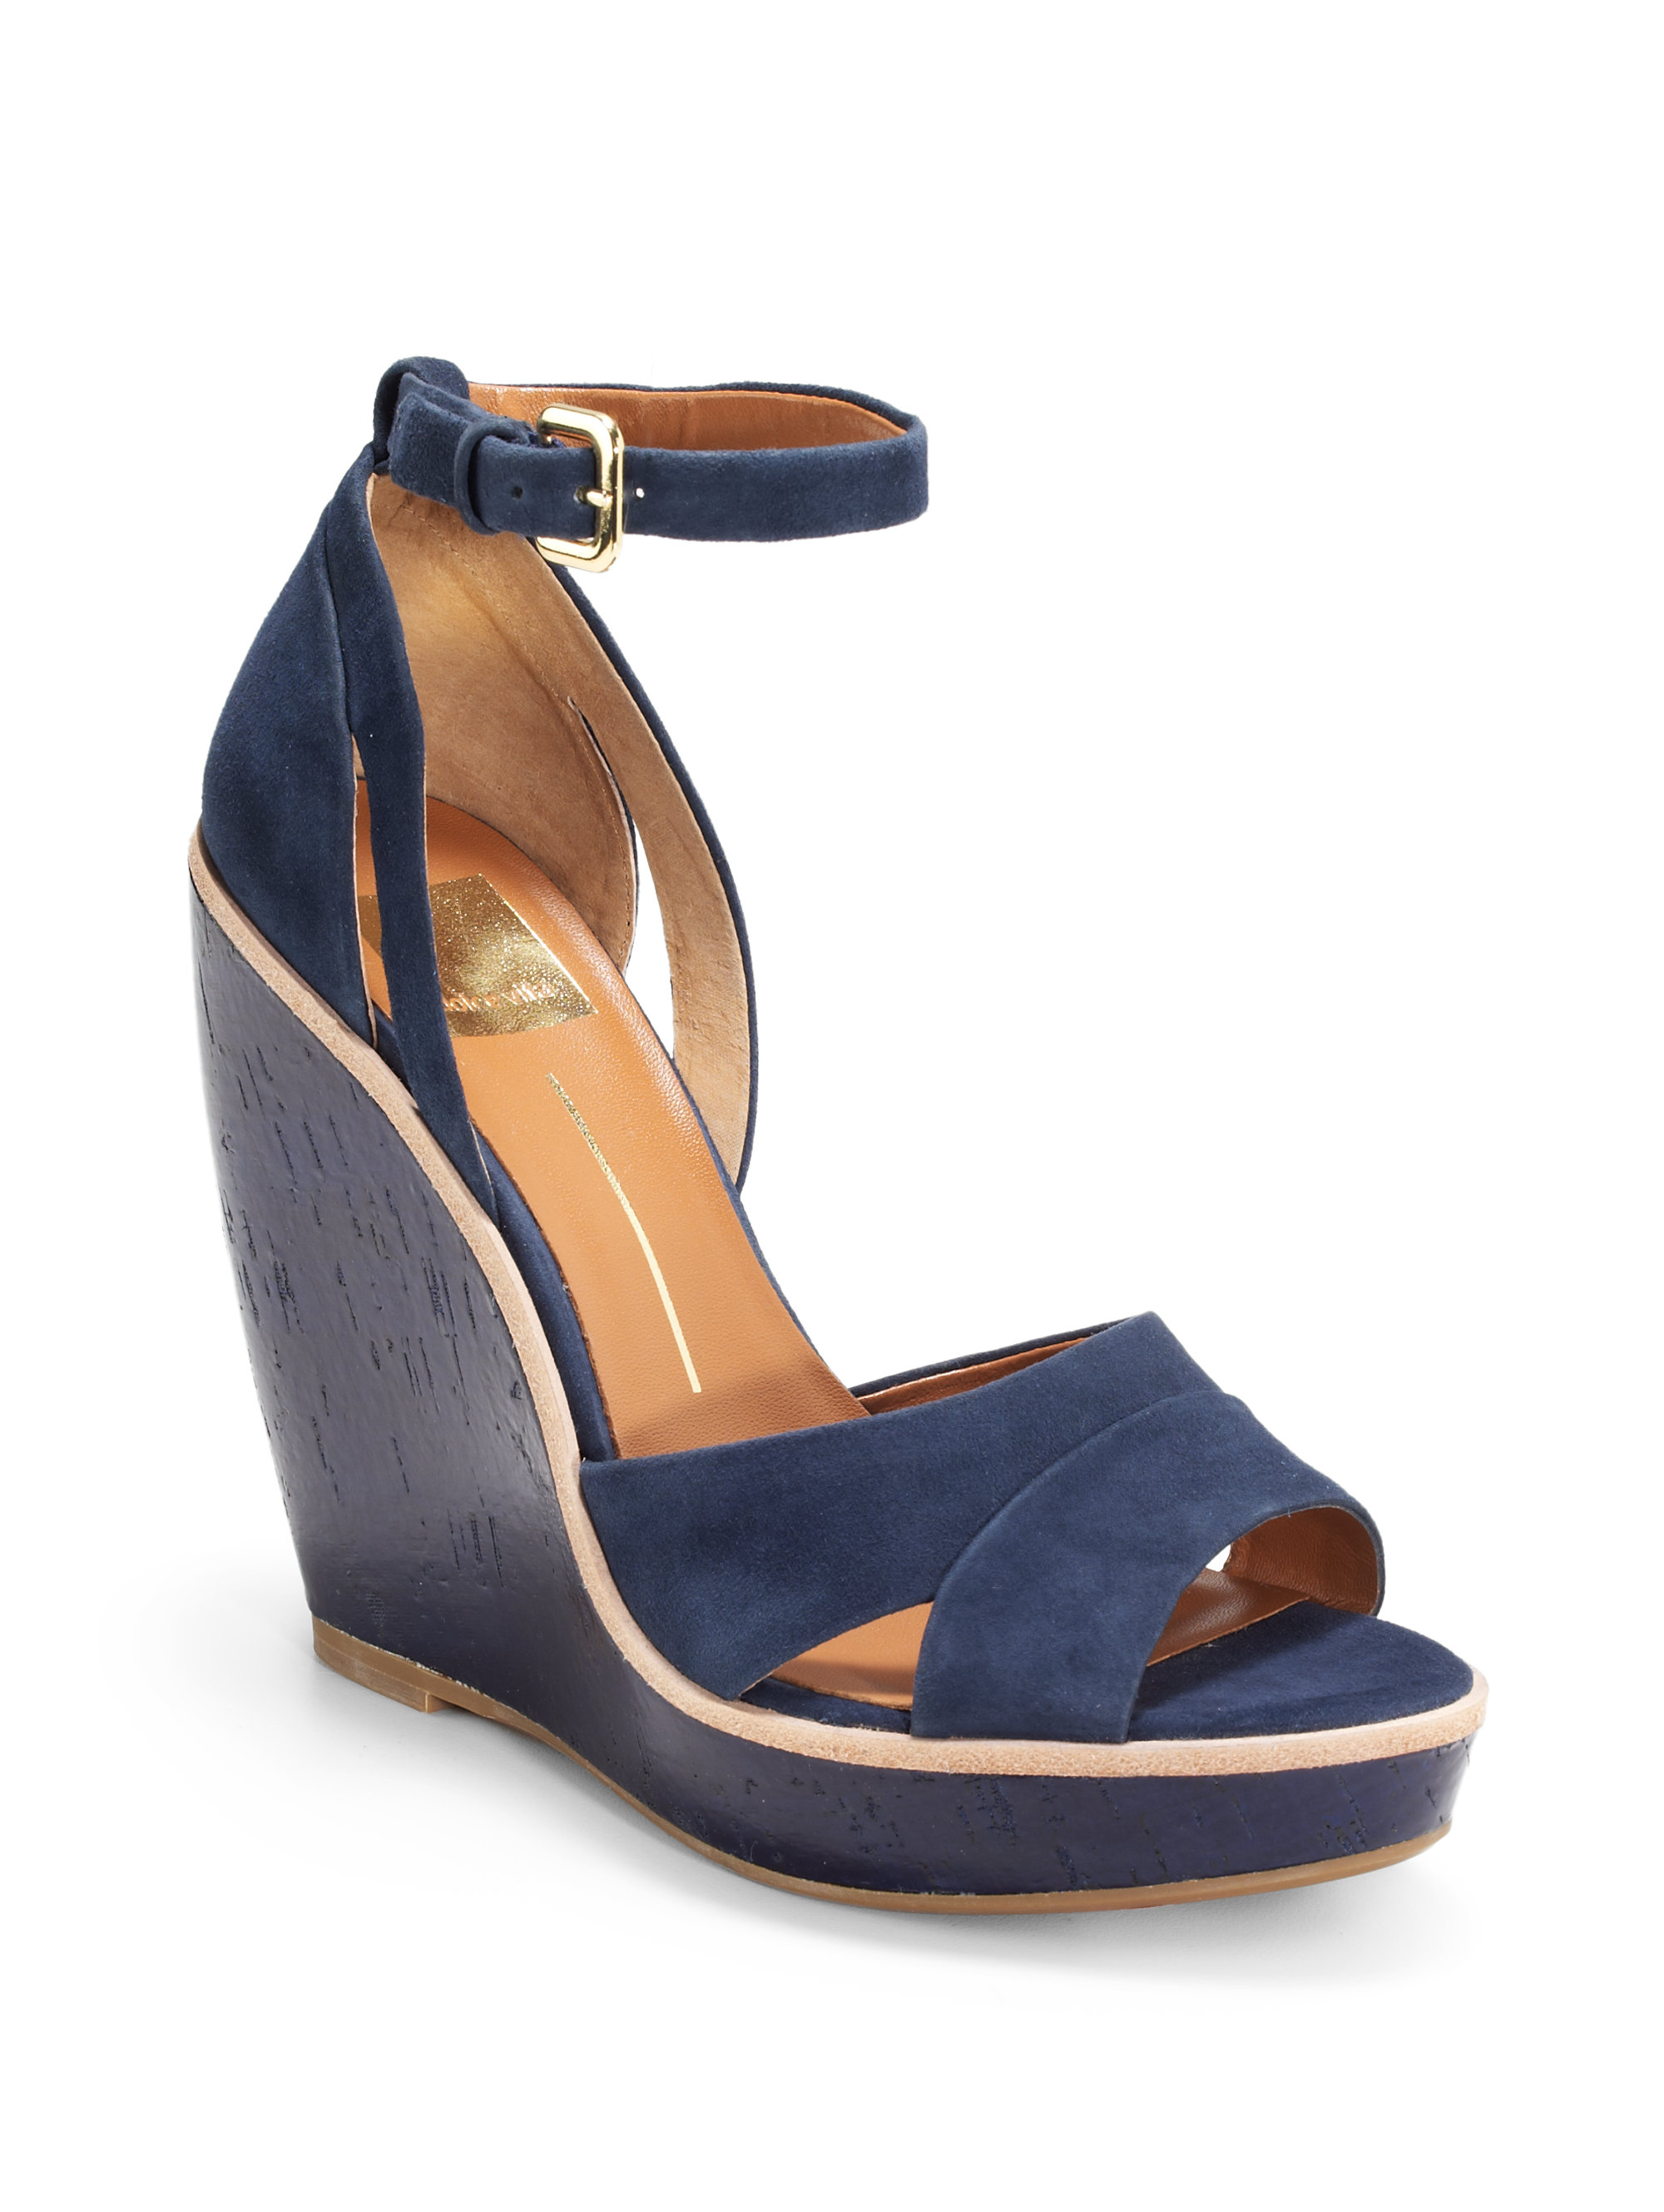 Lyst - Dolce Vita Paiva Ankle Strap Wedge Sandals in Blue c55c323a14